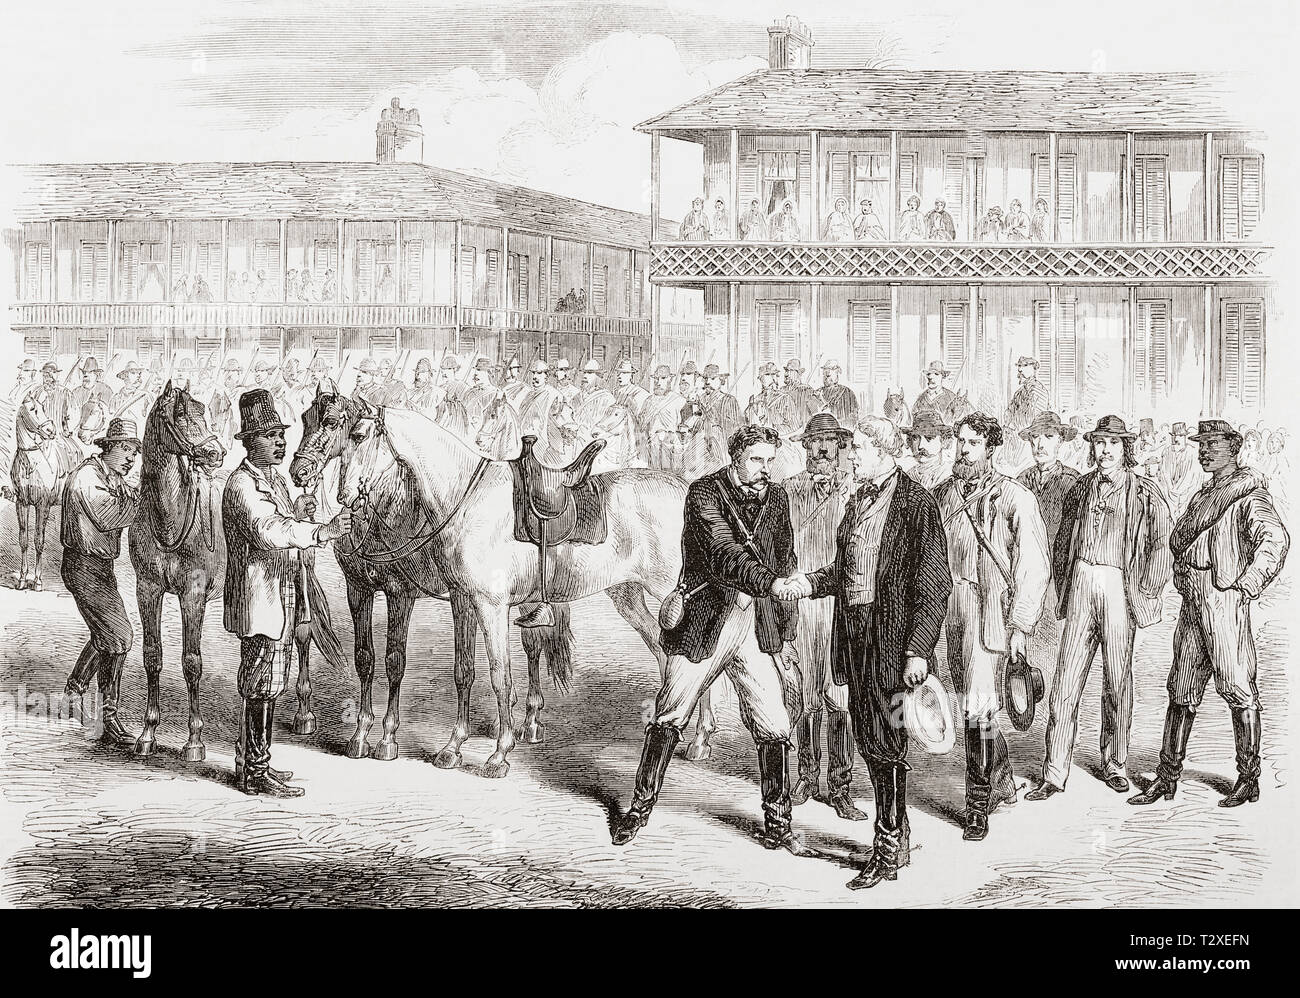 The last days of the Confederate Government, the conclusion of the American Civil War.  President Davis bidding farewell to his escort and staff in the square at Washington, Georgia two days before his capture.  Jefferson Finis Davis, 1808 – 1889. American politician who served as the only President of the Confederate States from 1861 to 1865.  From The Illustrated London News, published 1865. - Stock Image